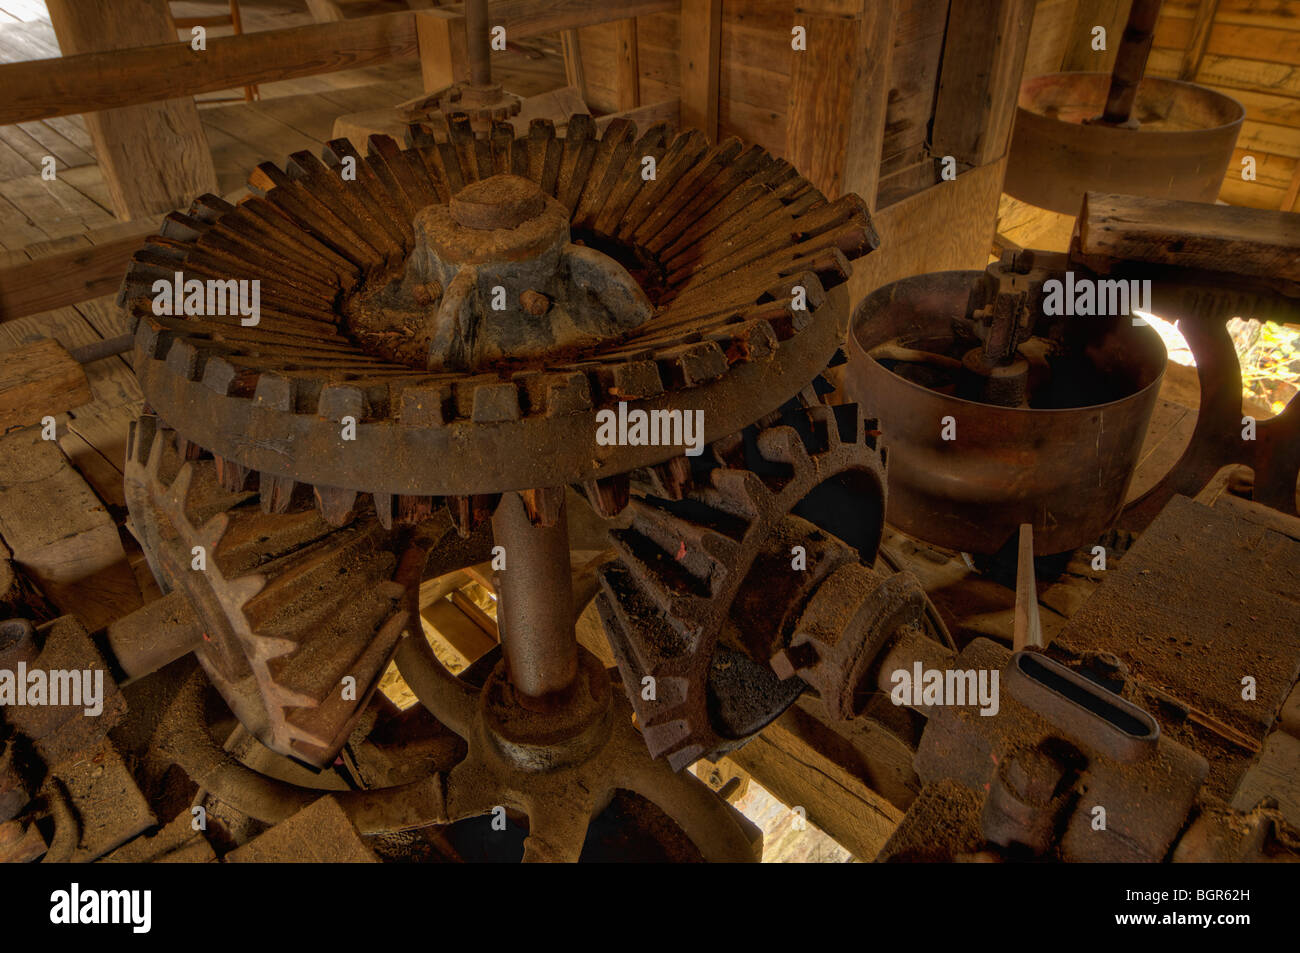 Gears inside of the York Grist Mill in Pall Mall, Tennessee - Stock Image